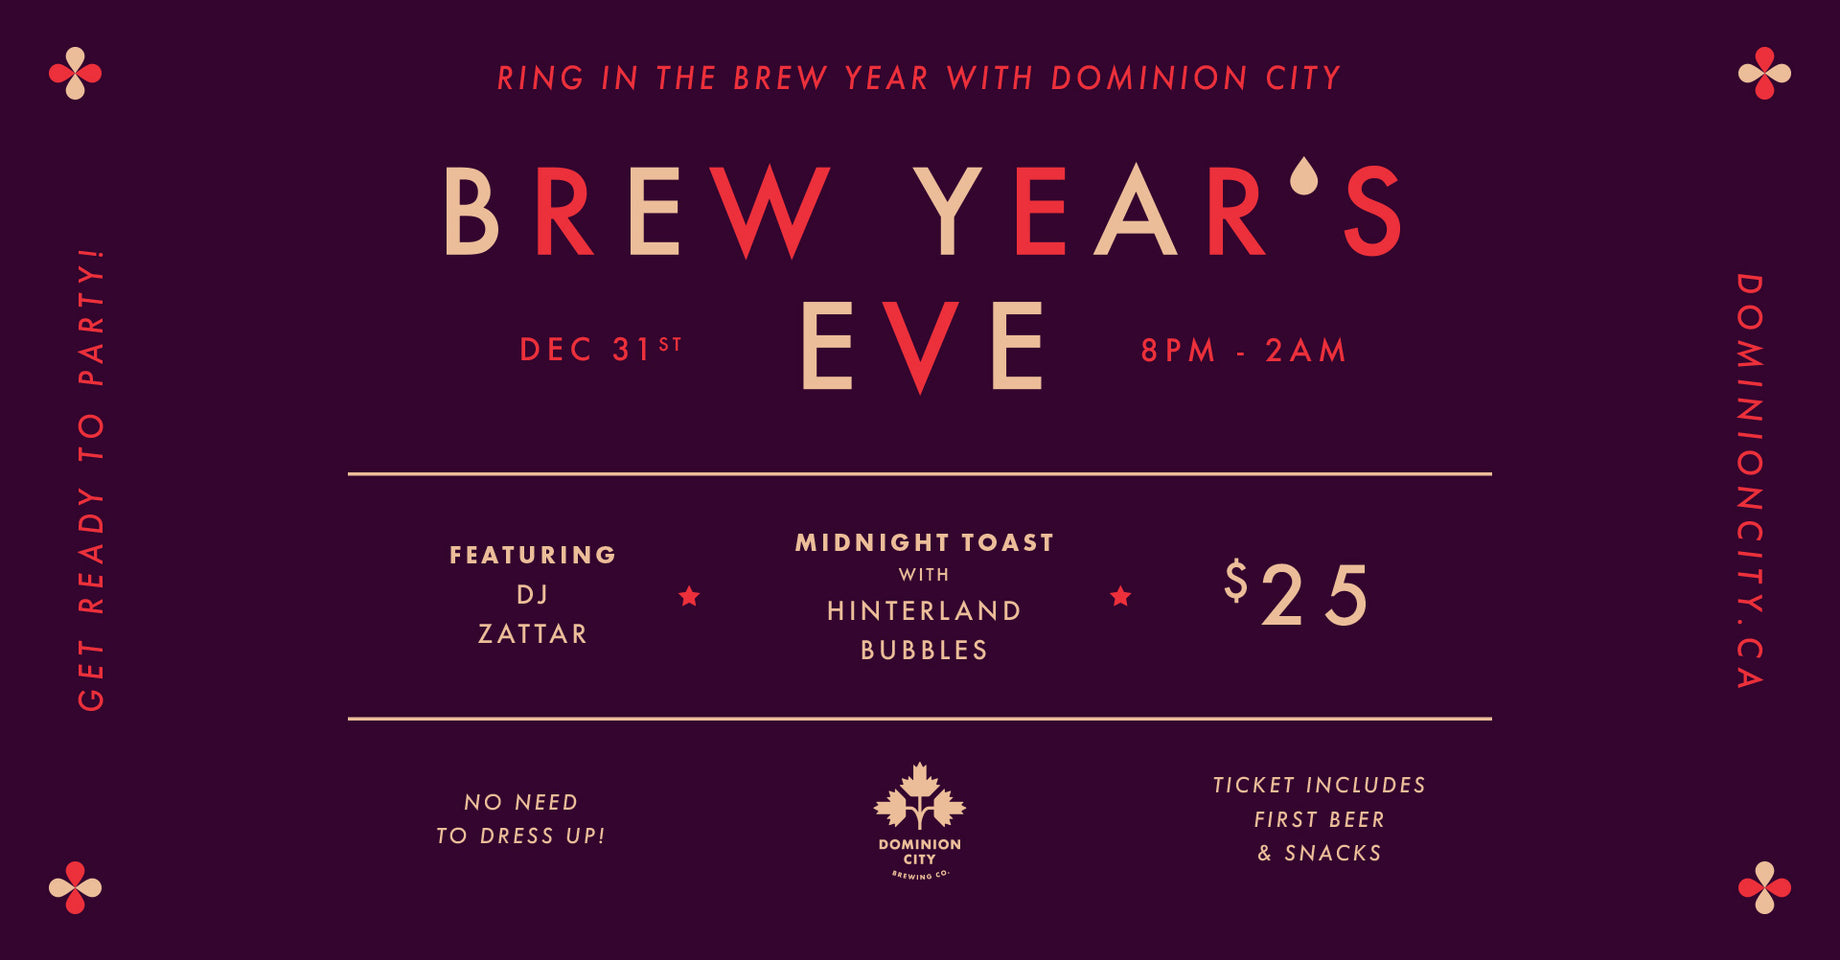 Ring in the brew year with us!